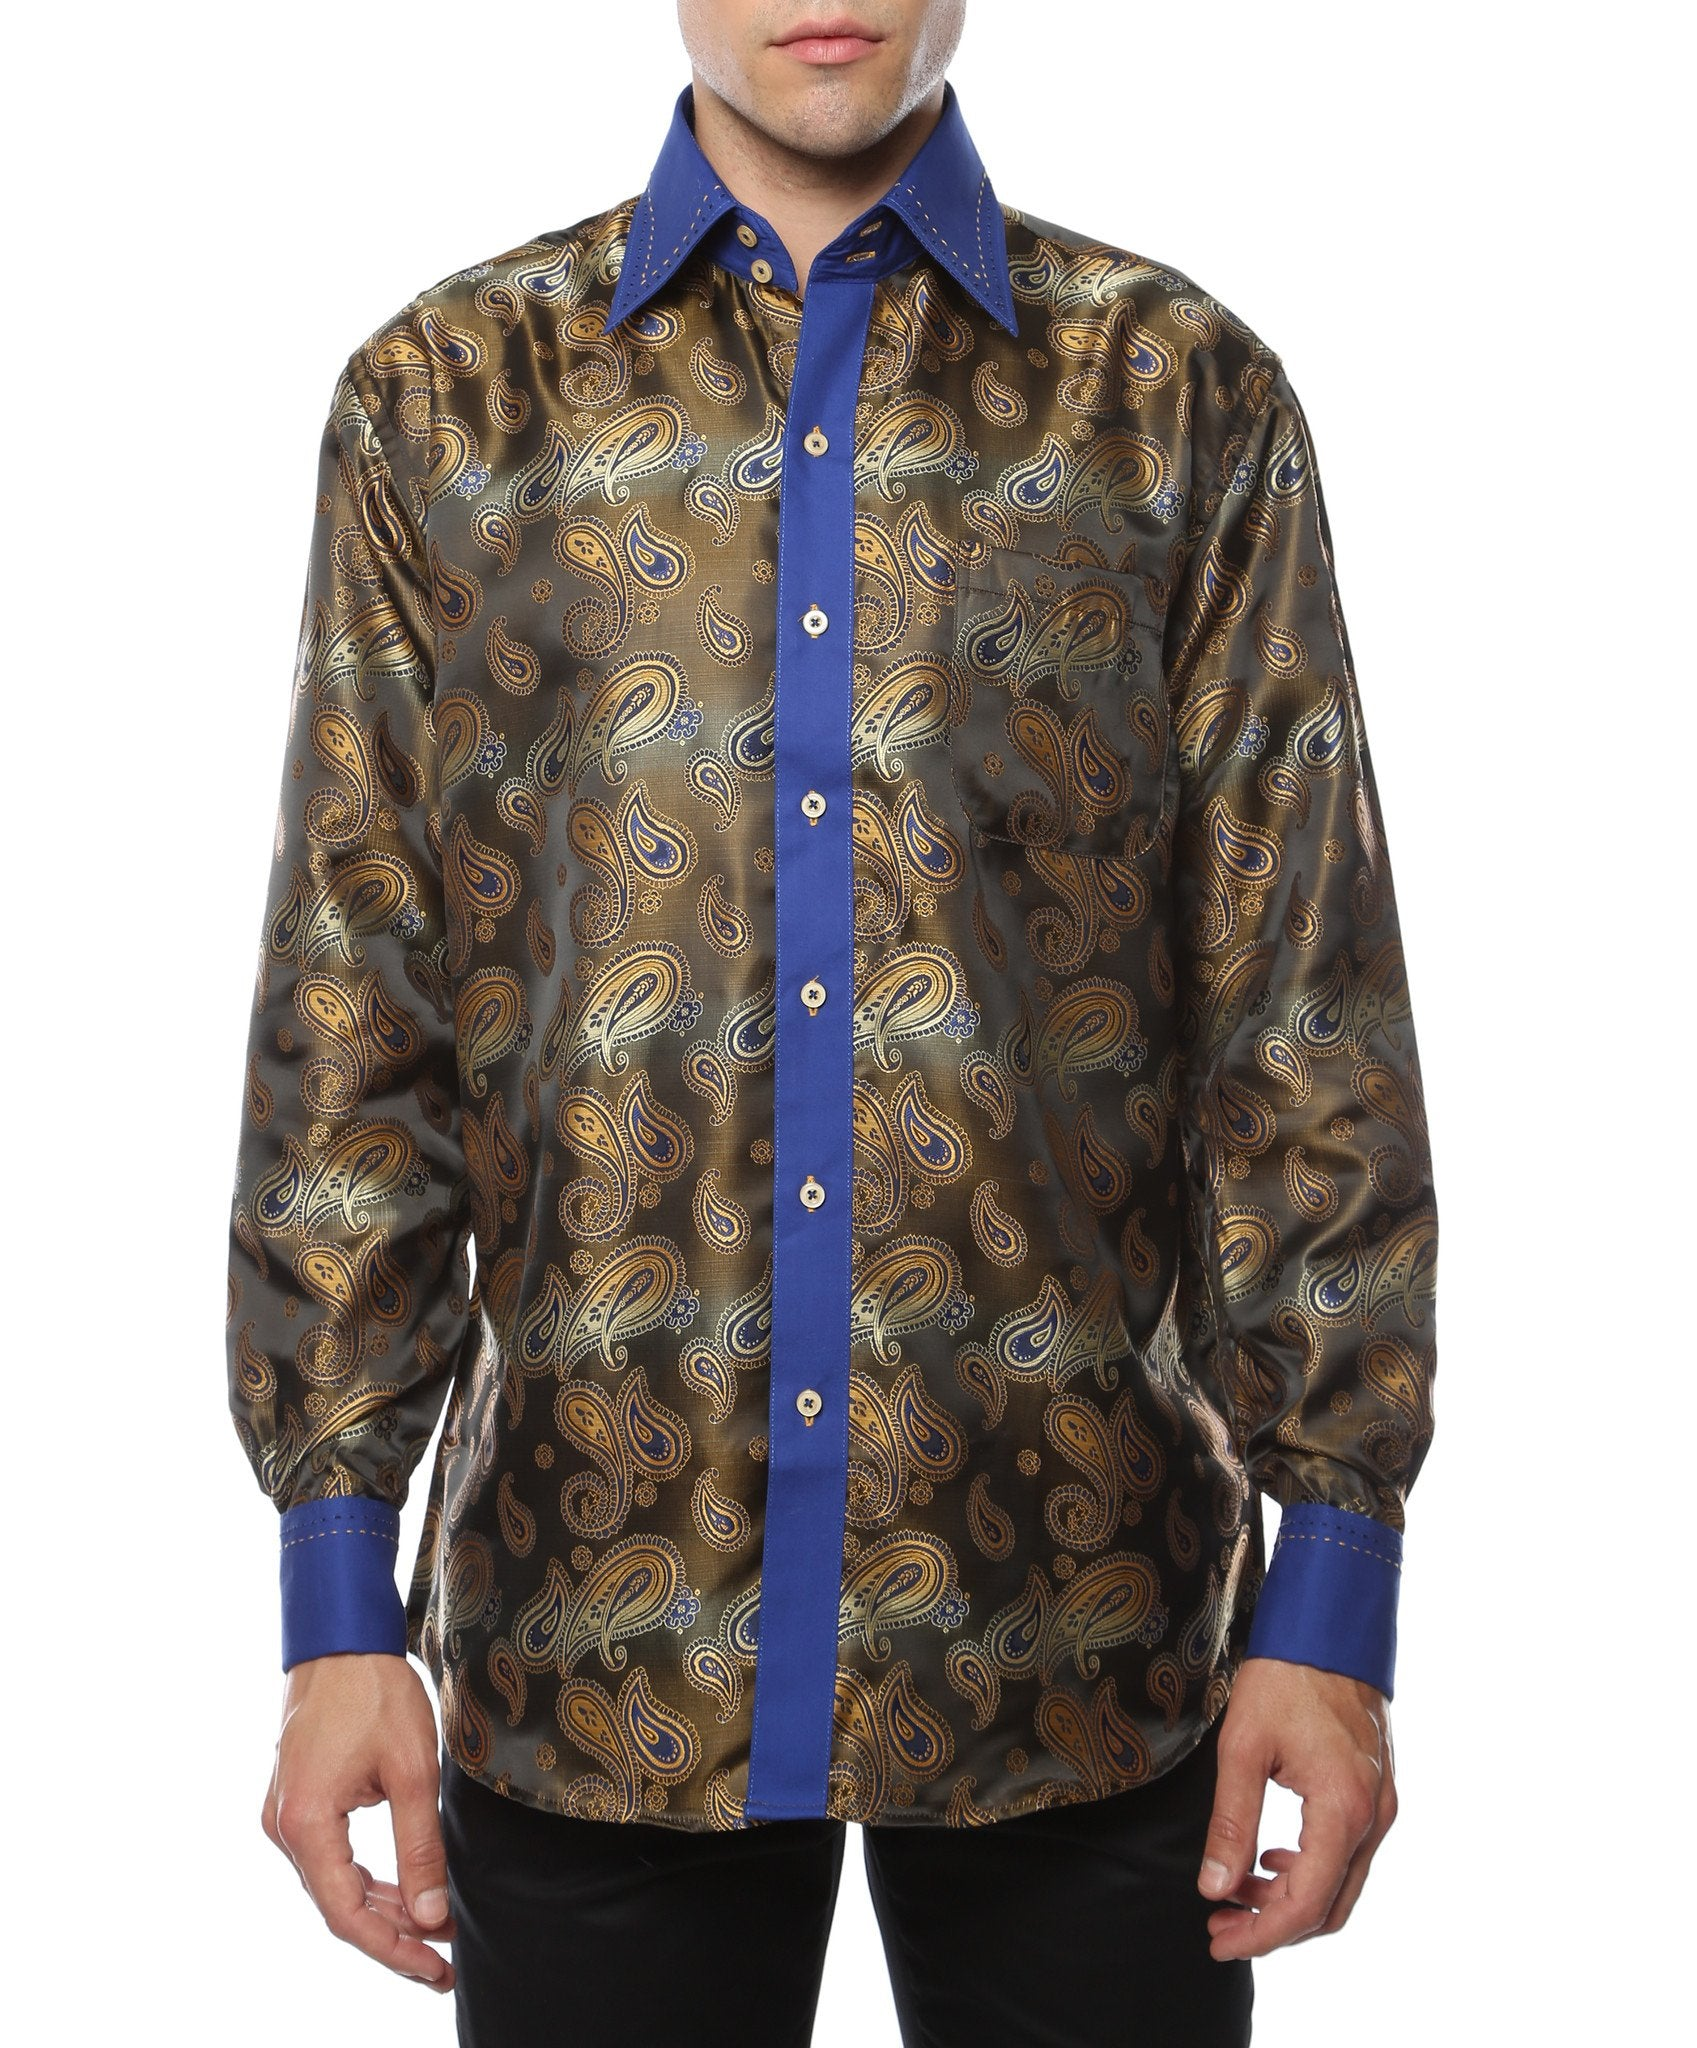 Ferrecci Men's Satine Hi-1019 Blue & Gold Tone Paisley Button Down Dress Shirt - Giorgio's Menswear